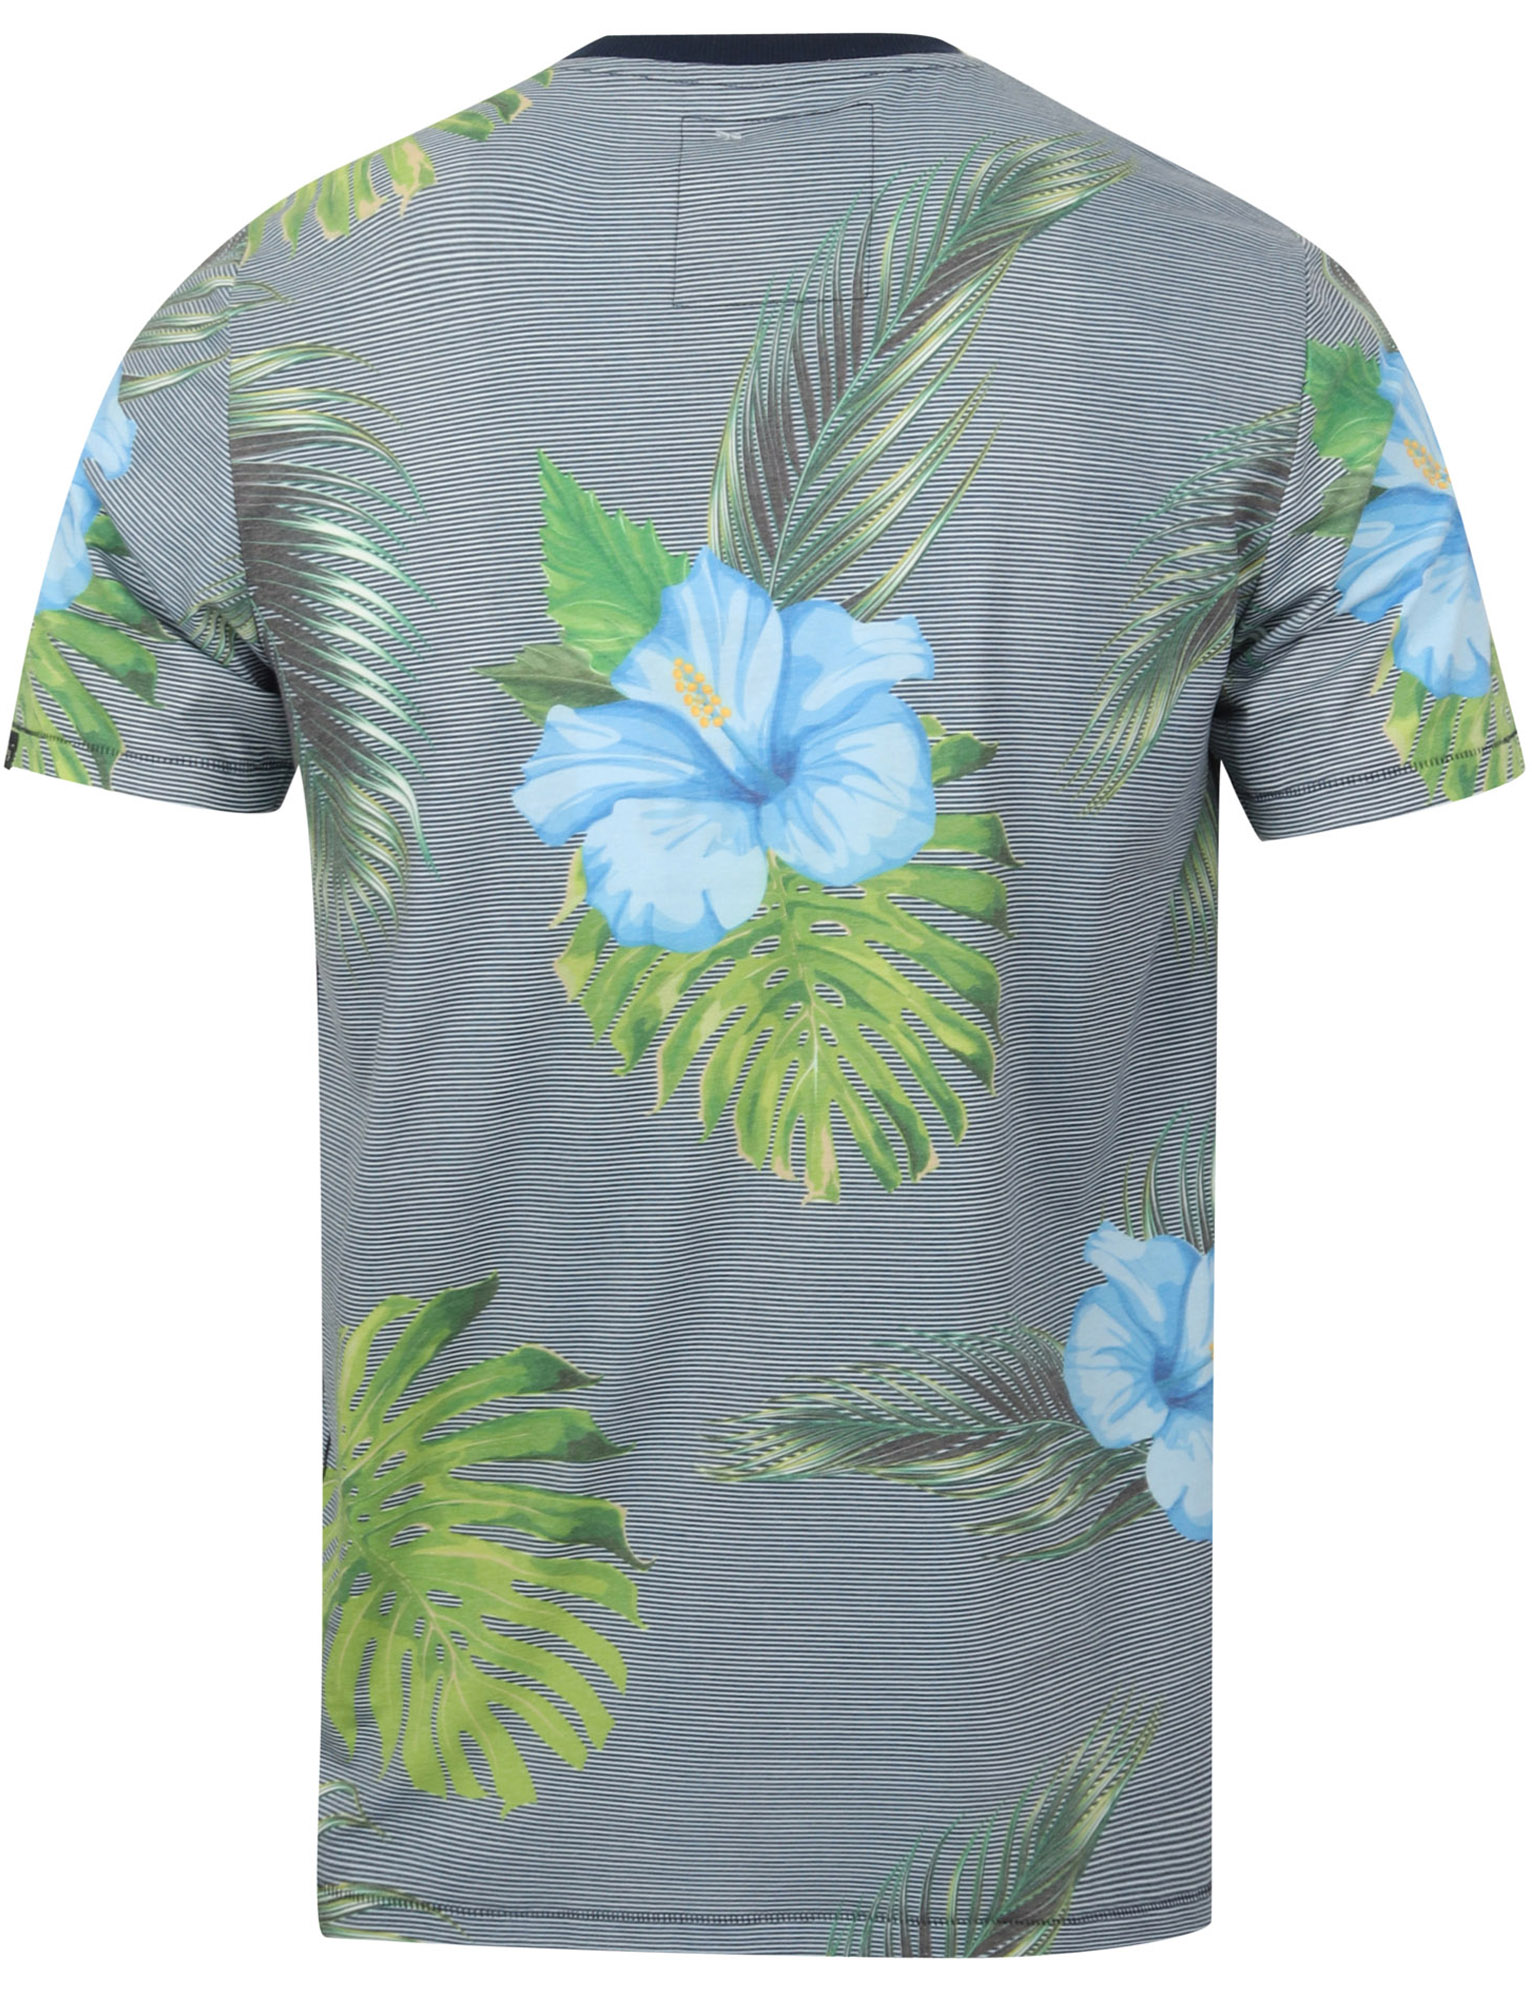 Tokyo-Laundry-Tropical-Print-Crew-Neck-T-Shirt-Hawaiian-Floral-Summer-Holiday thumbnail 34